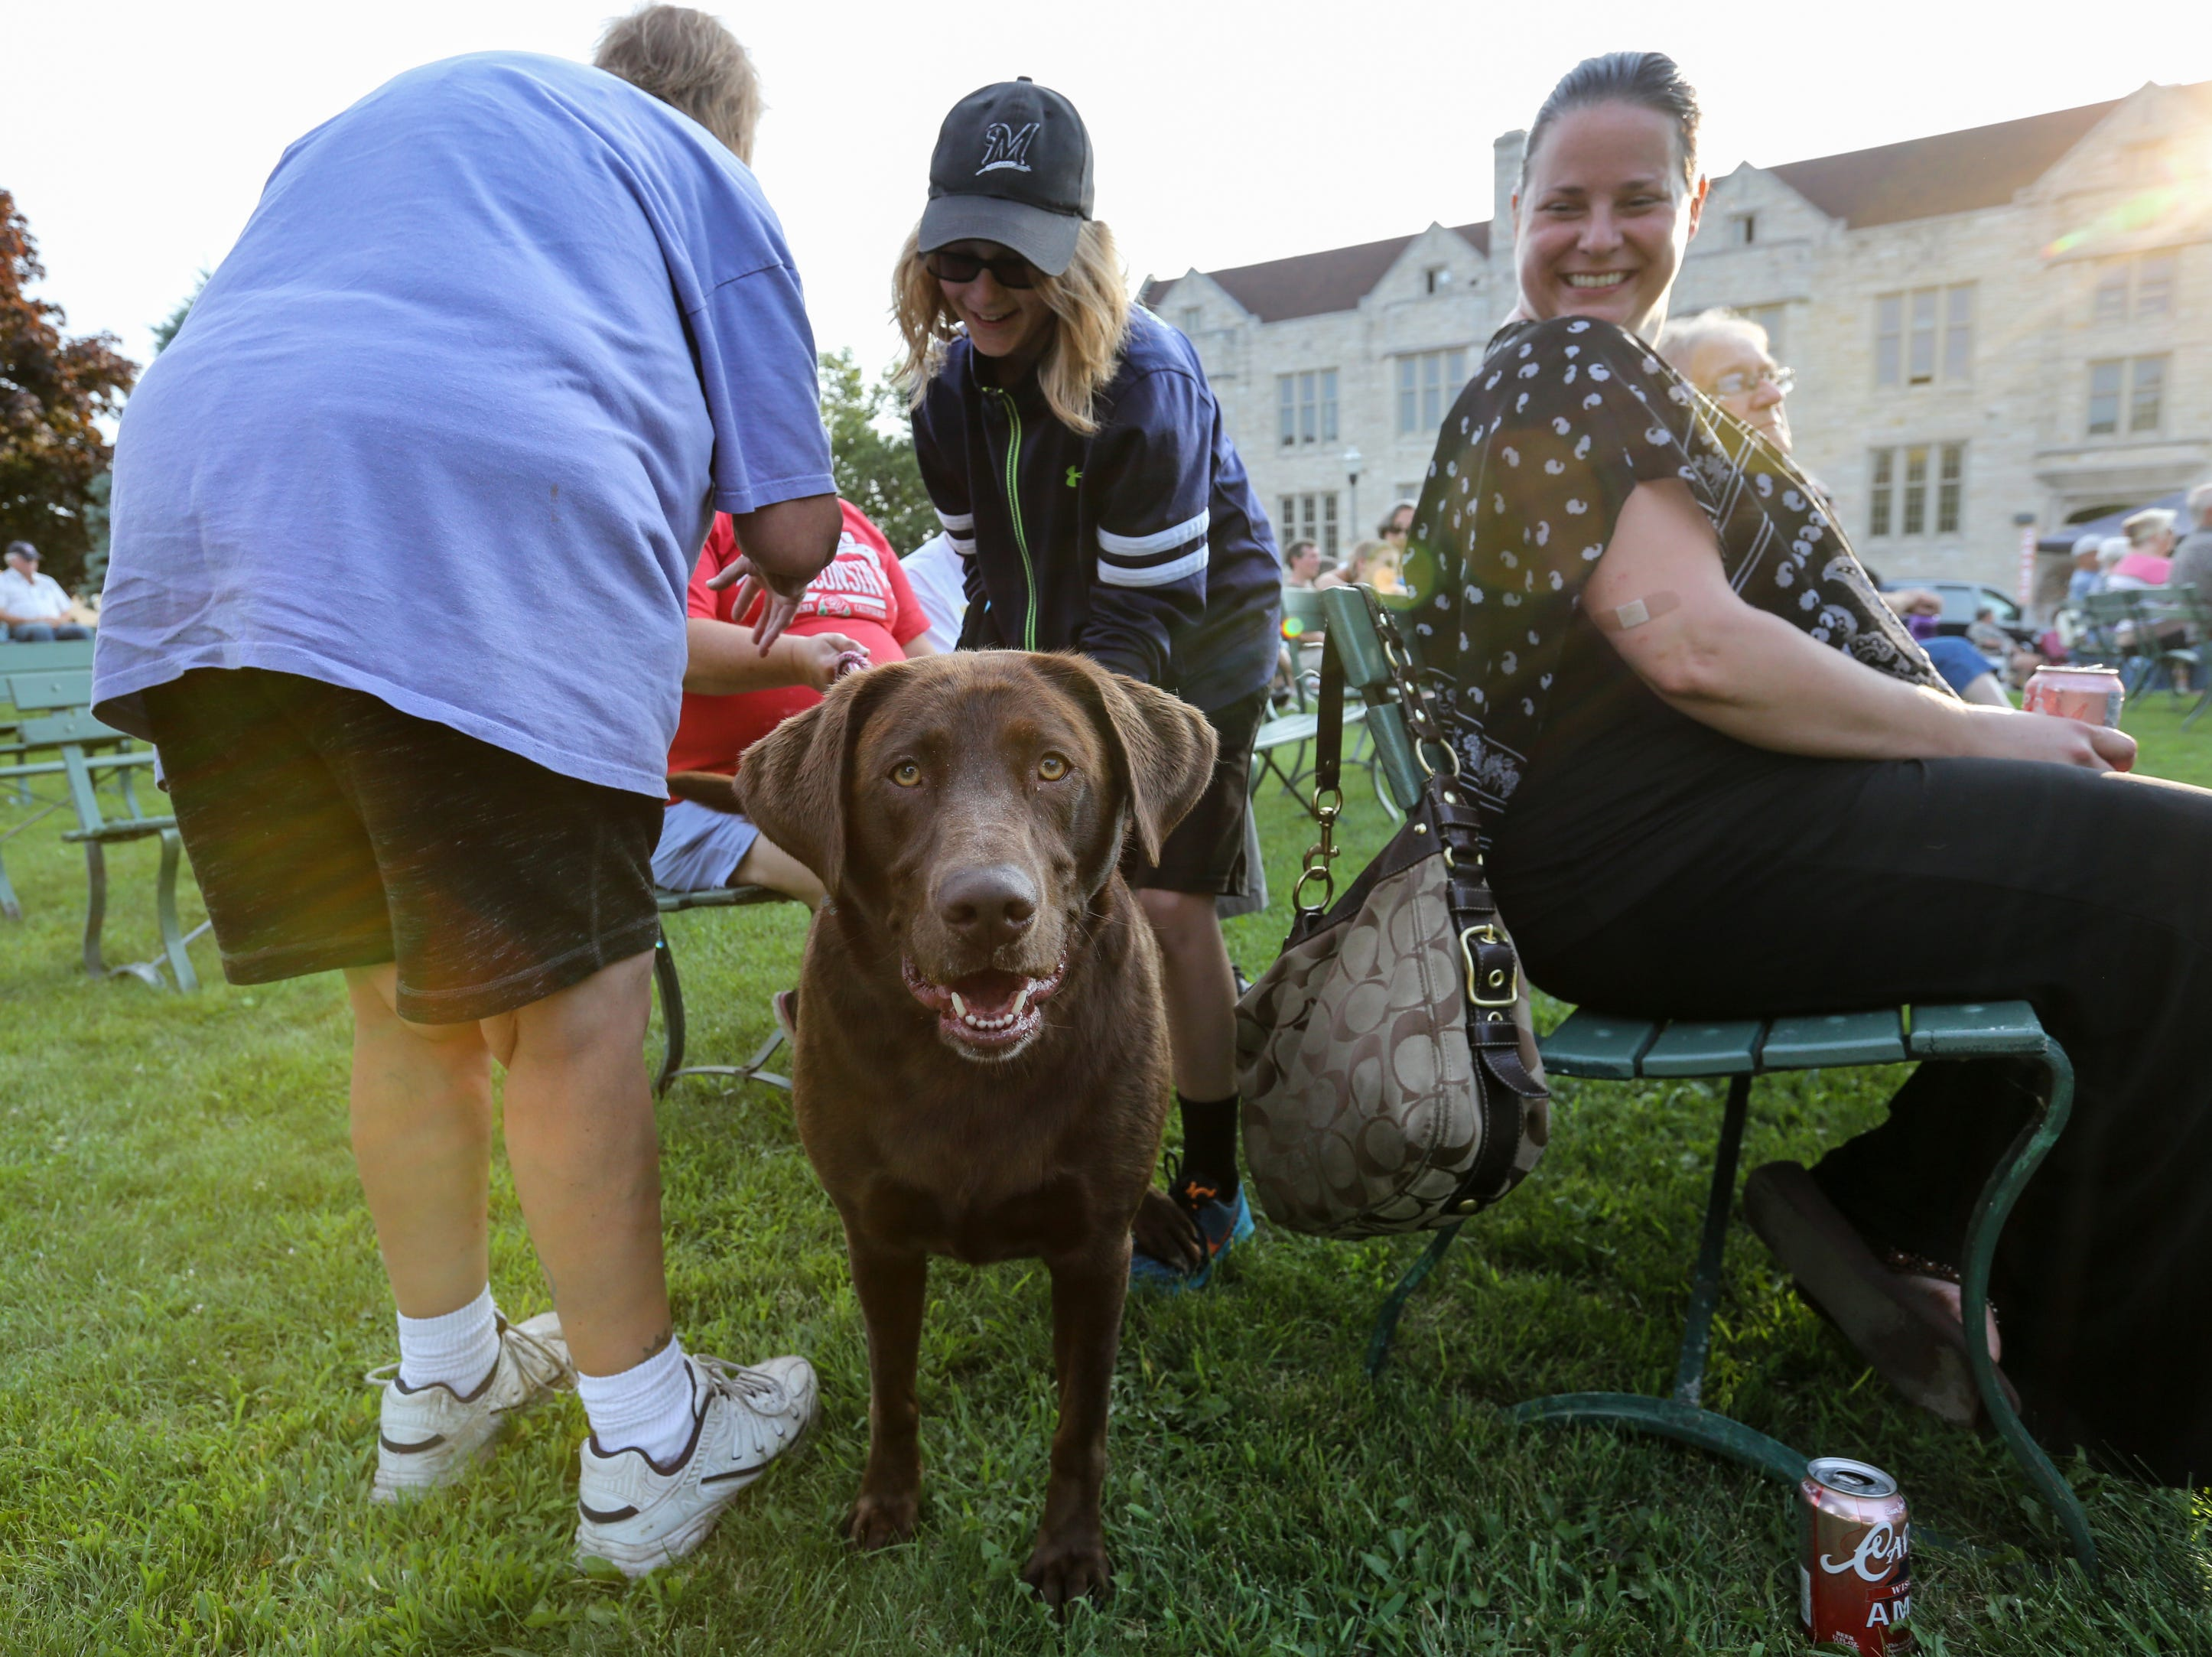 Luanne Feron's dog Winnie approaches the camera as the Two Rivers Community Band plays their final concert of the season at Central Park Thursday, August 9, 2018, in Two Rivers, Wis. Josh Clark/USA TODAY NETWORK-Wisconsin